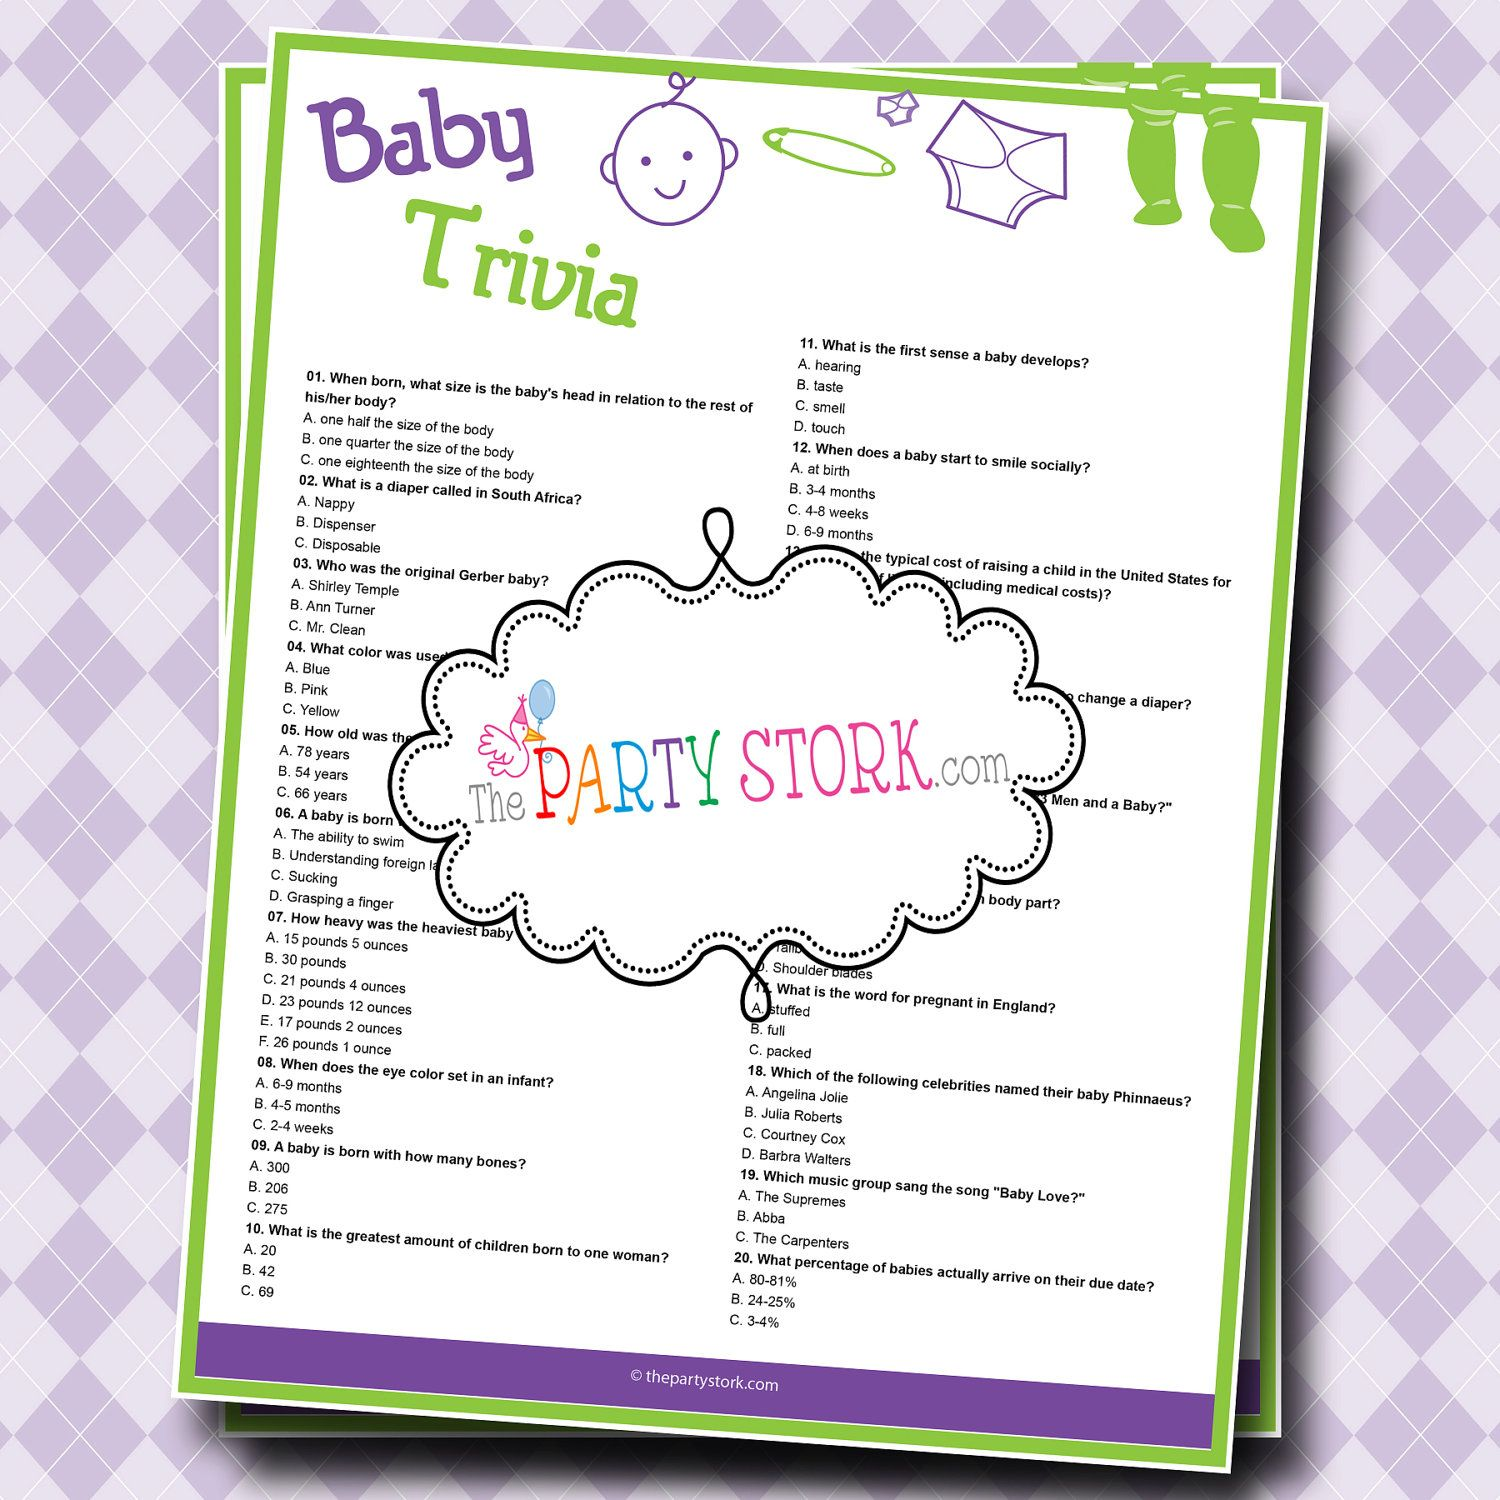 Baby Shower Trivia Game With Questions And Facts By